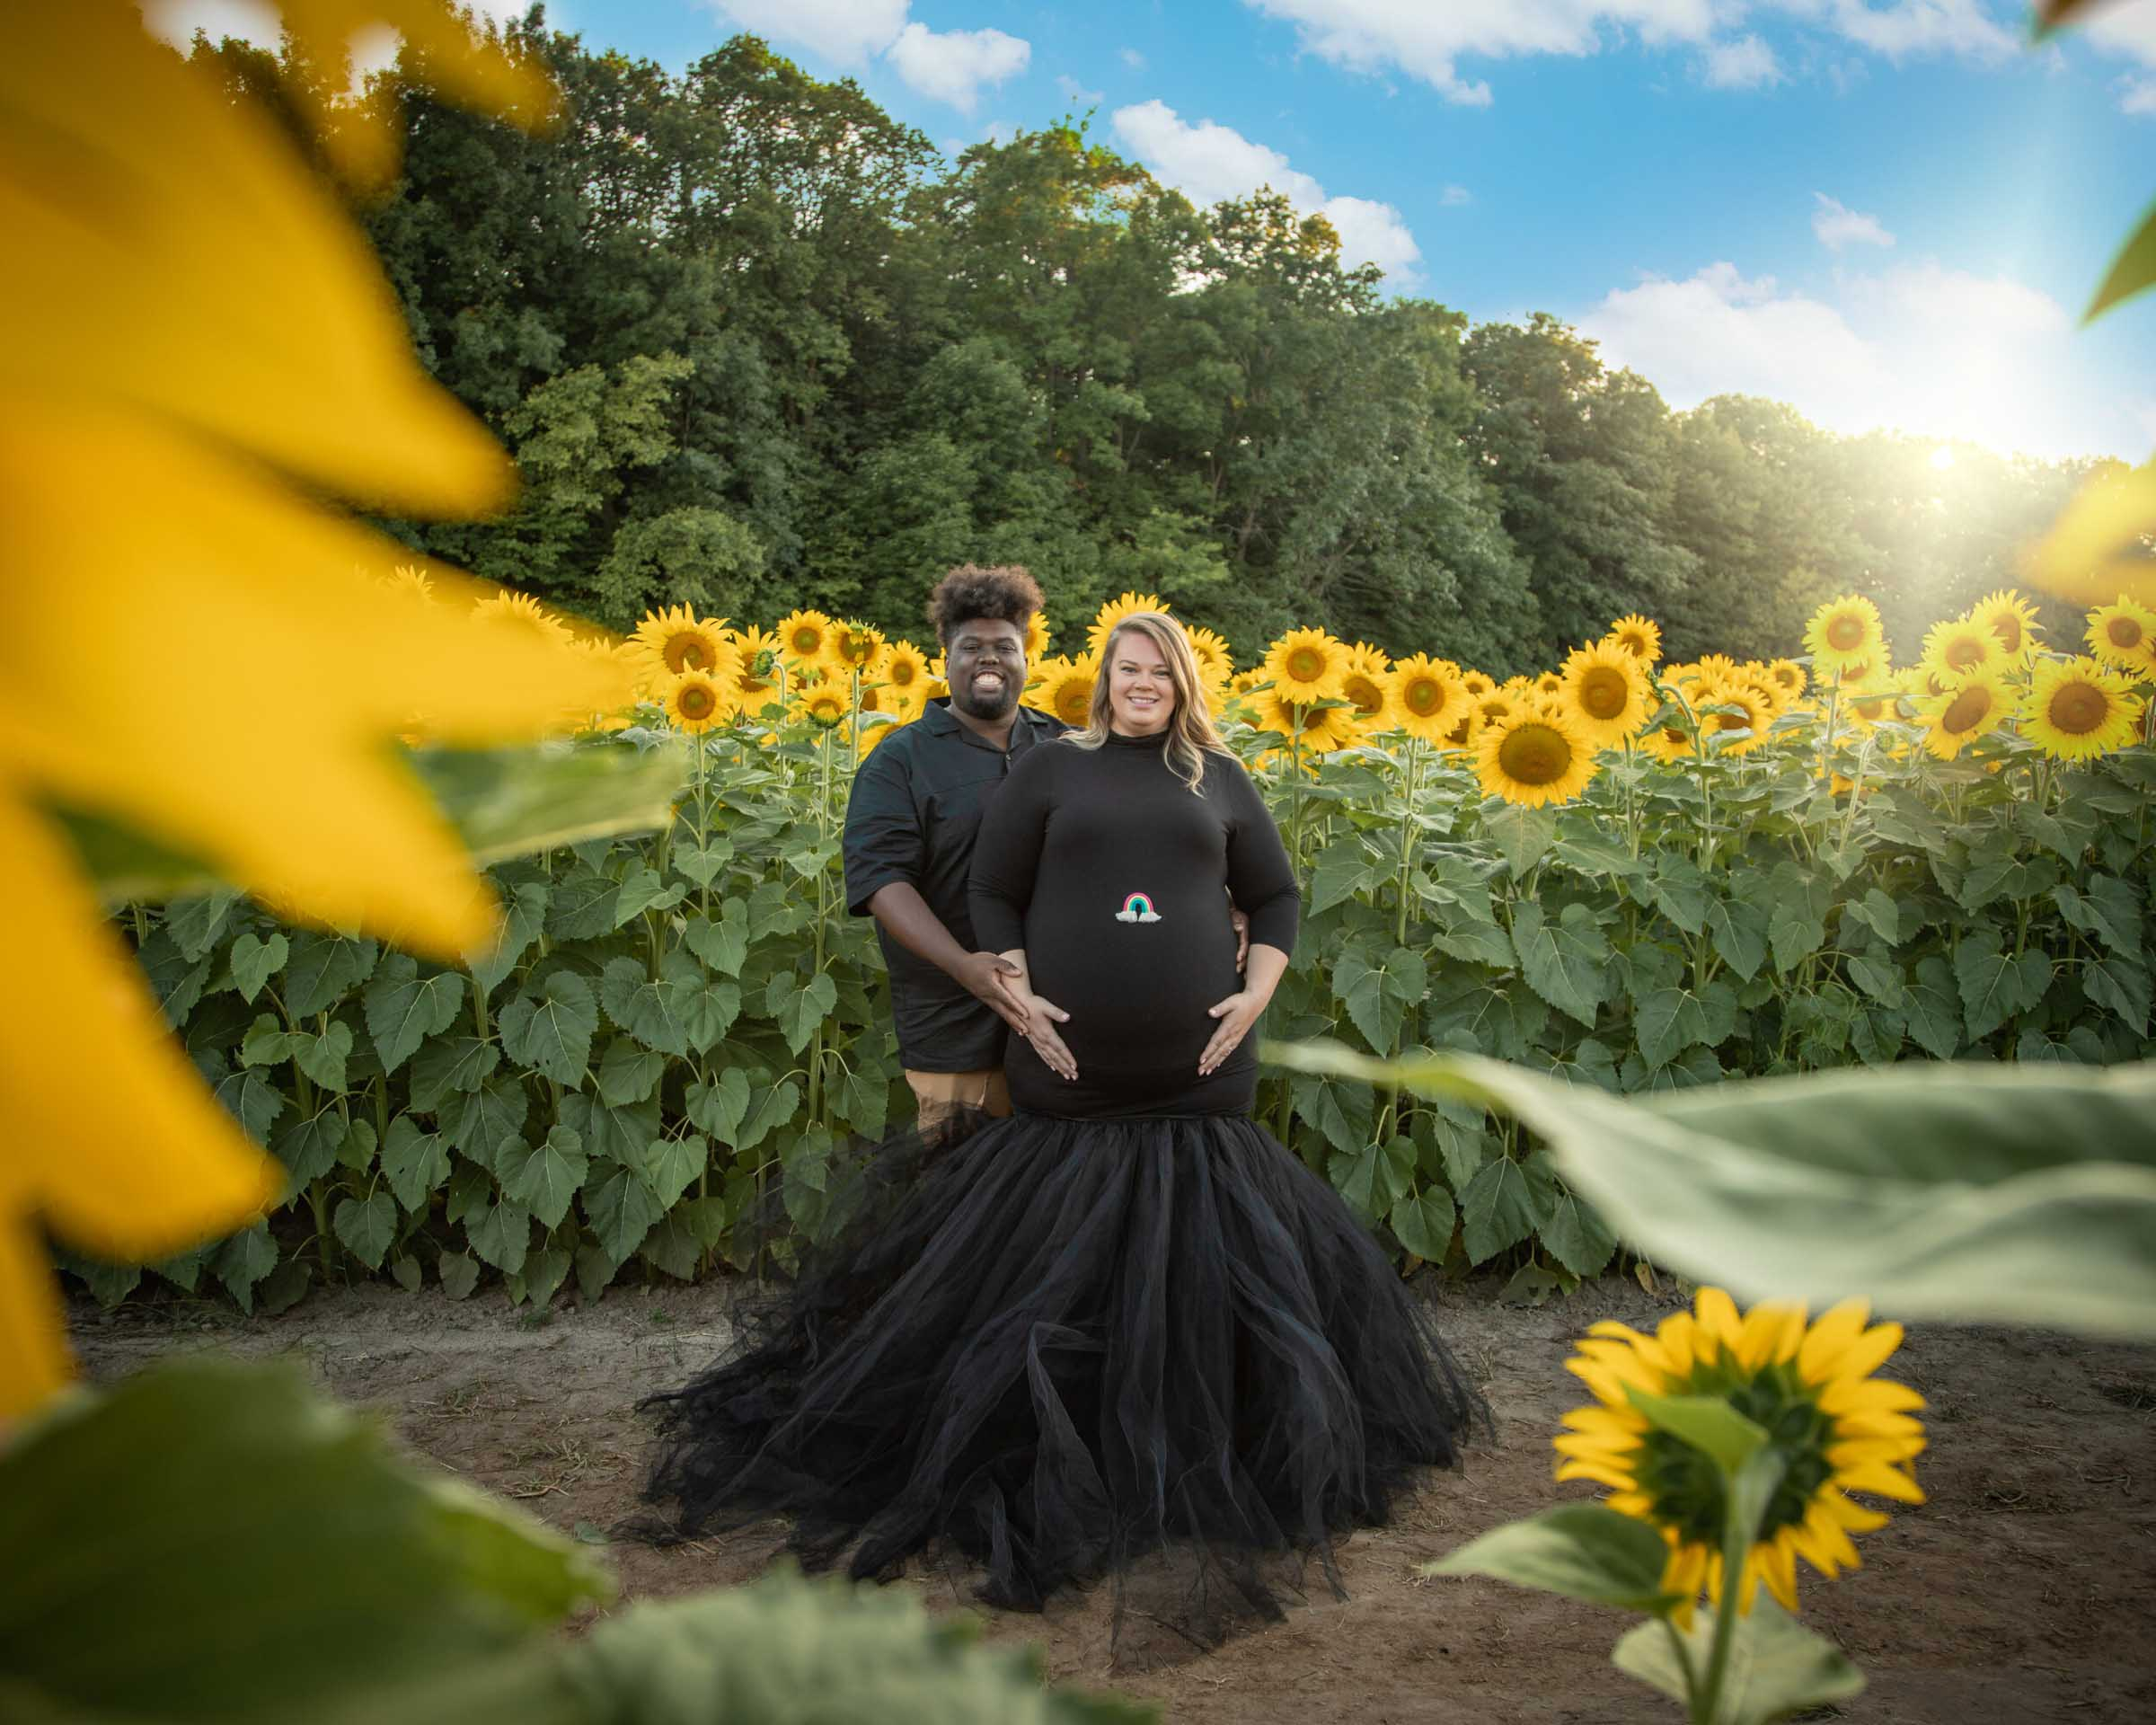 maternity session in sunflower field and black tulle gown minneapolis maternity photographer